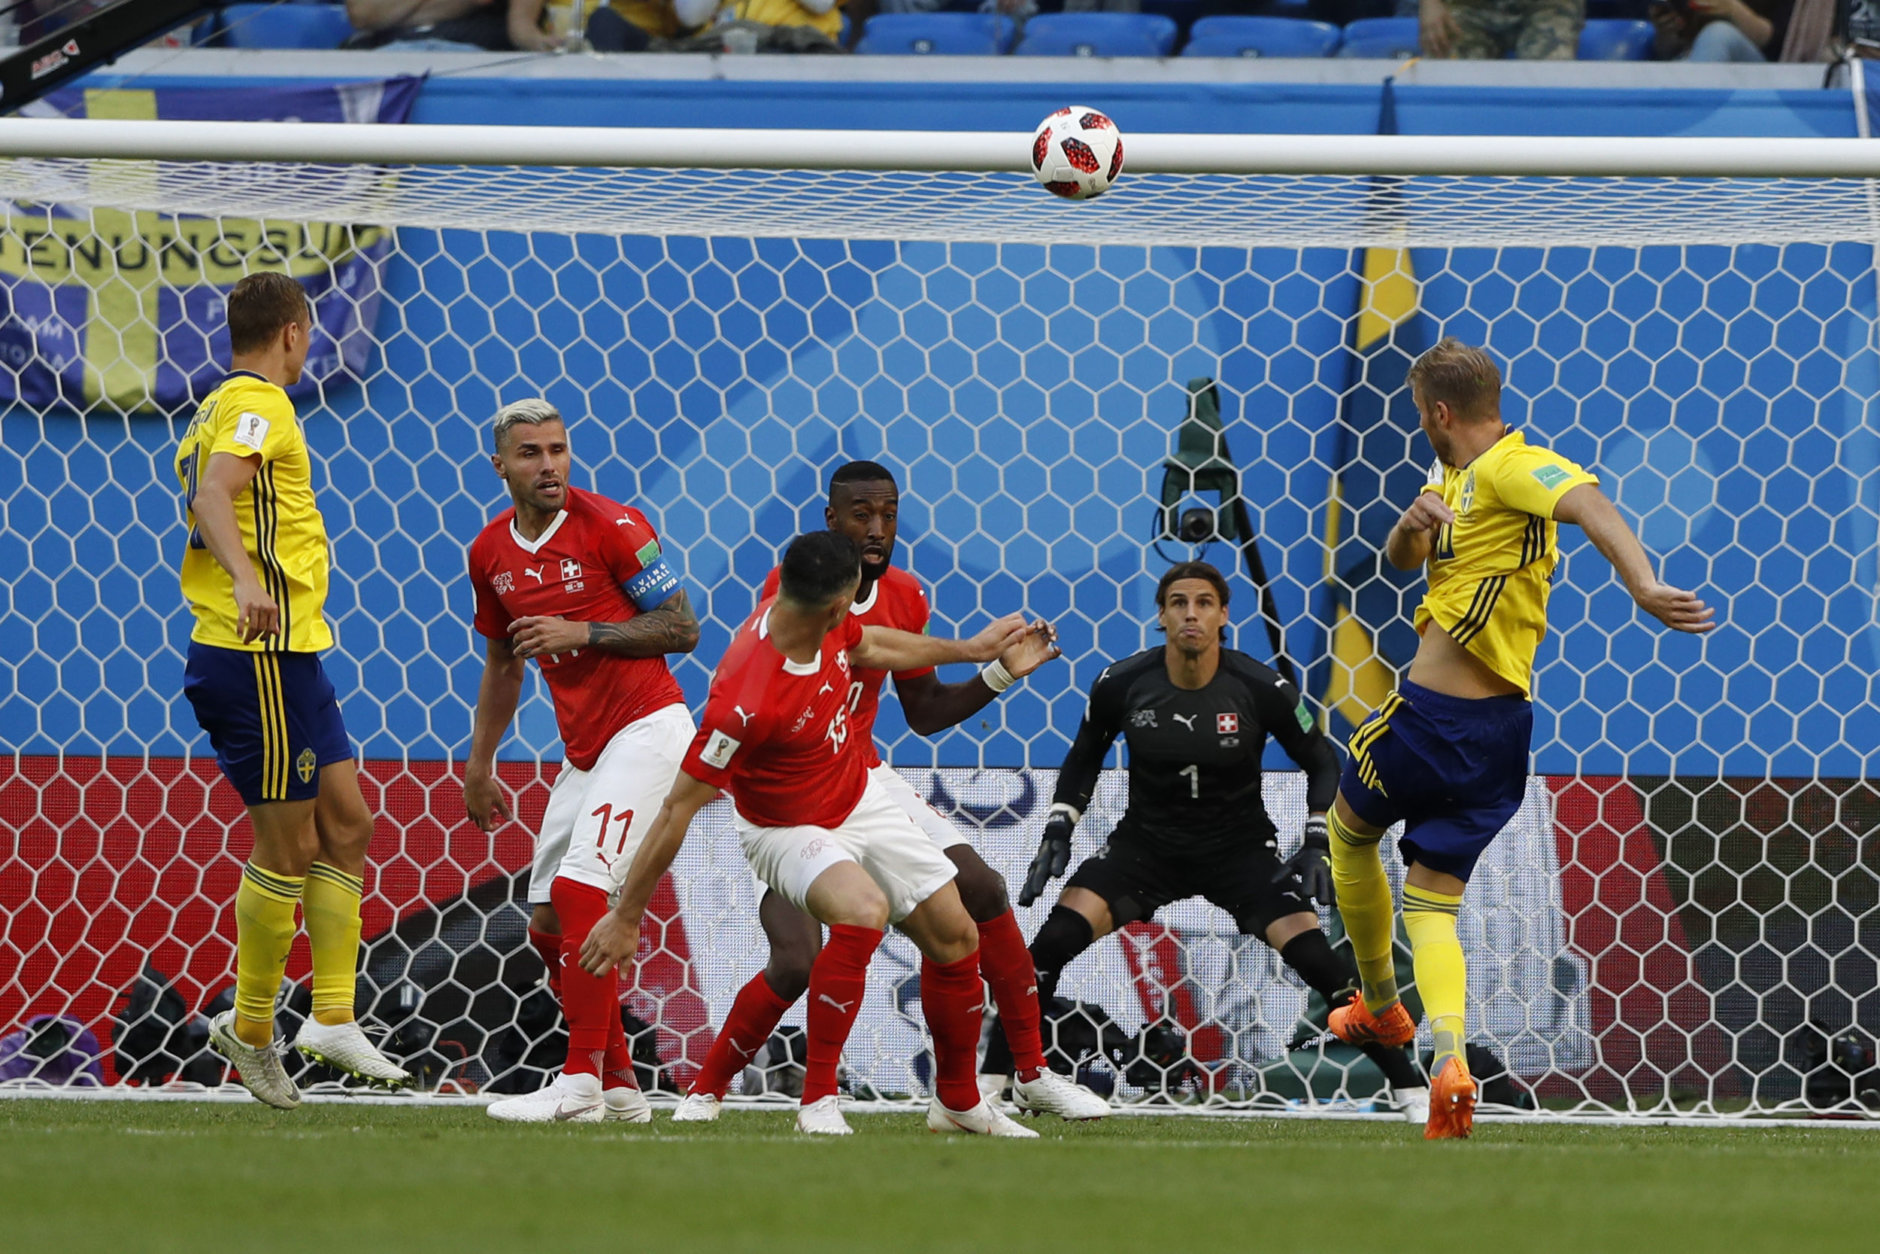 Sweden's Ola Toivonen, right, takes a shot during the round of 16 match between Switzerland and Sweden at the 2018 soccer World Cup in the St. Petersburg Stadium, in St. Petersburg, Russia, Tuesday, July 3, 2018. (AP Photo/Darko Bandic)